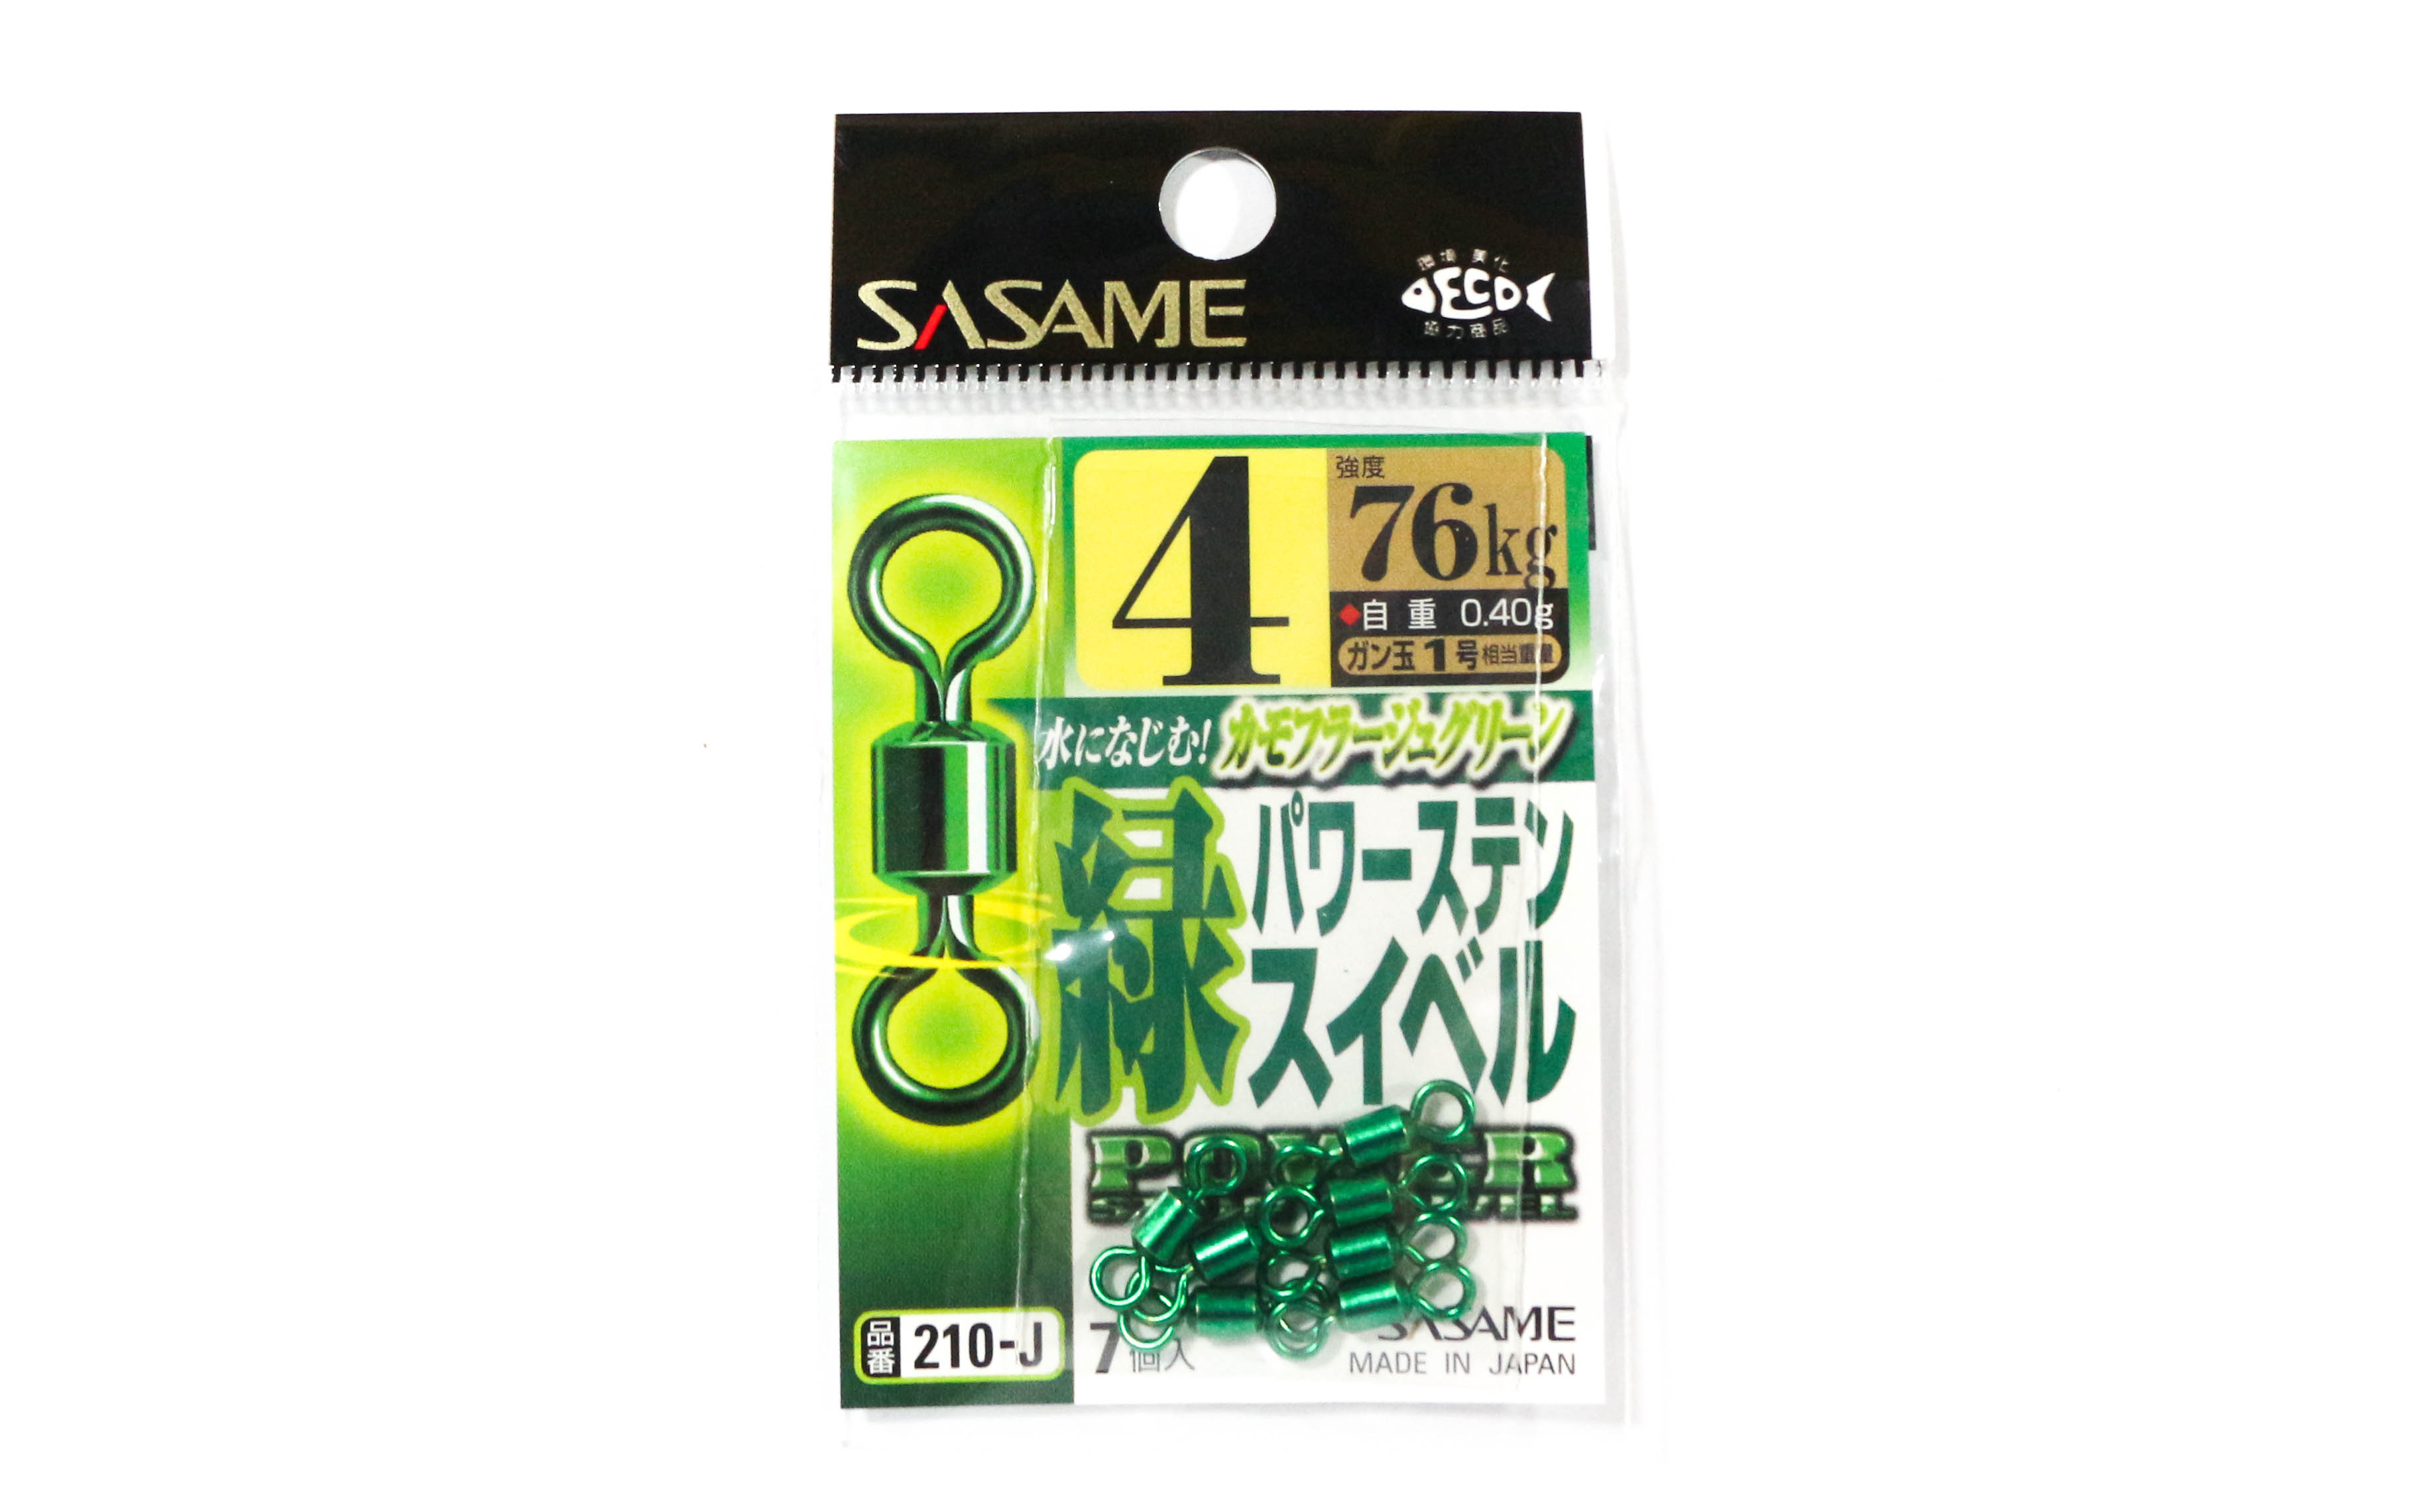 Sasame 210-J Power Stain Swivel Smooth Spin Green Size 4 (9809)